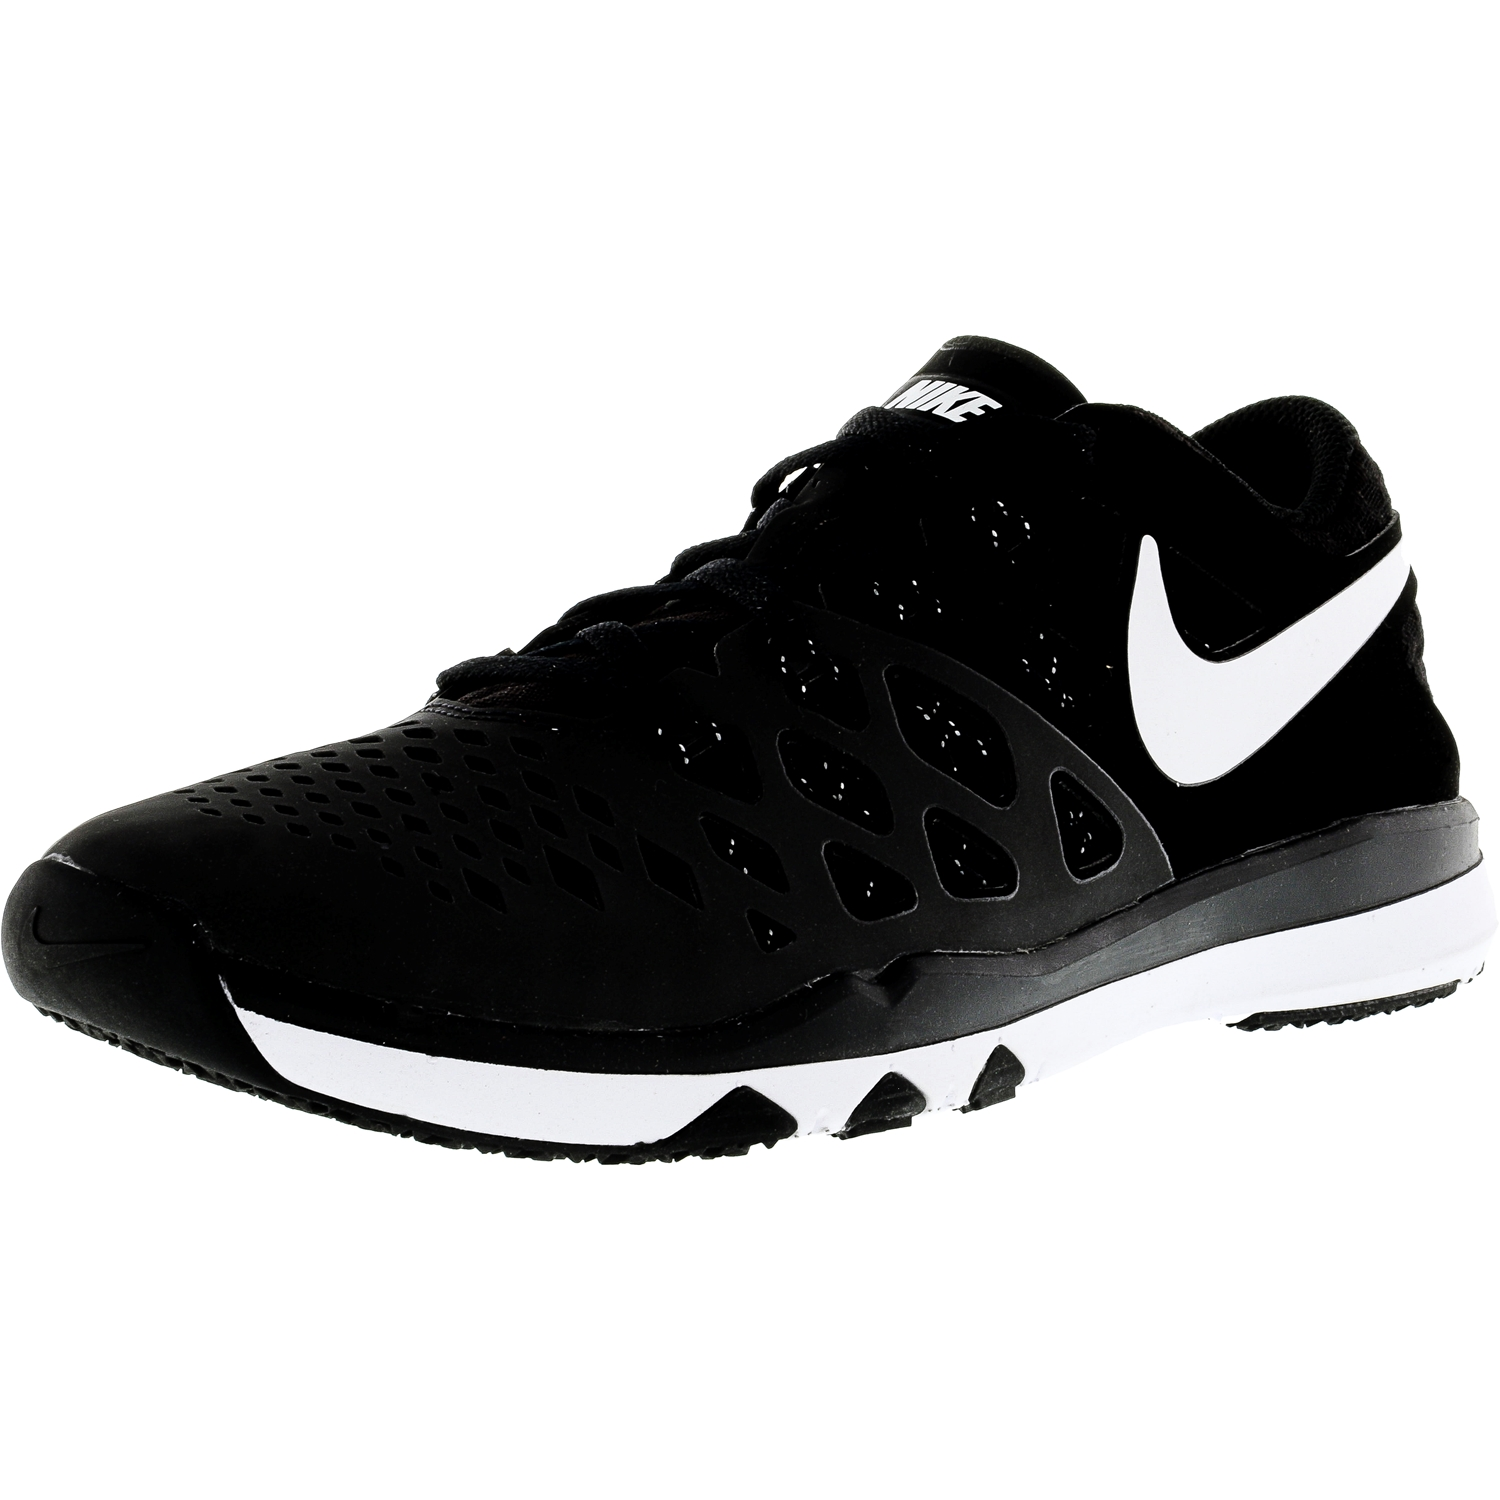 Nike Men's Train Speed 4 Black / White-Black Ankle-High Fabric Training Shoes - 11M